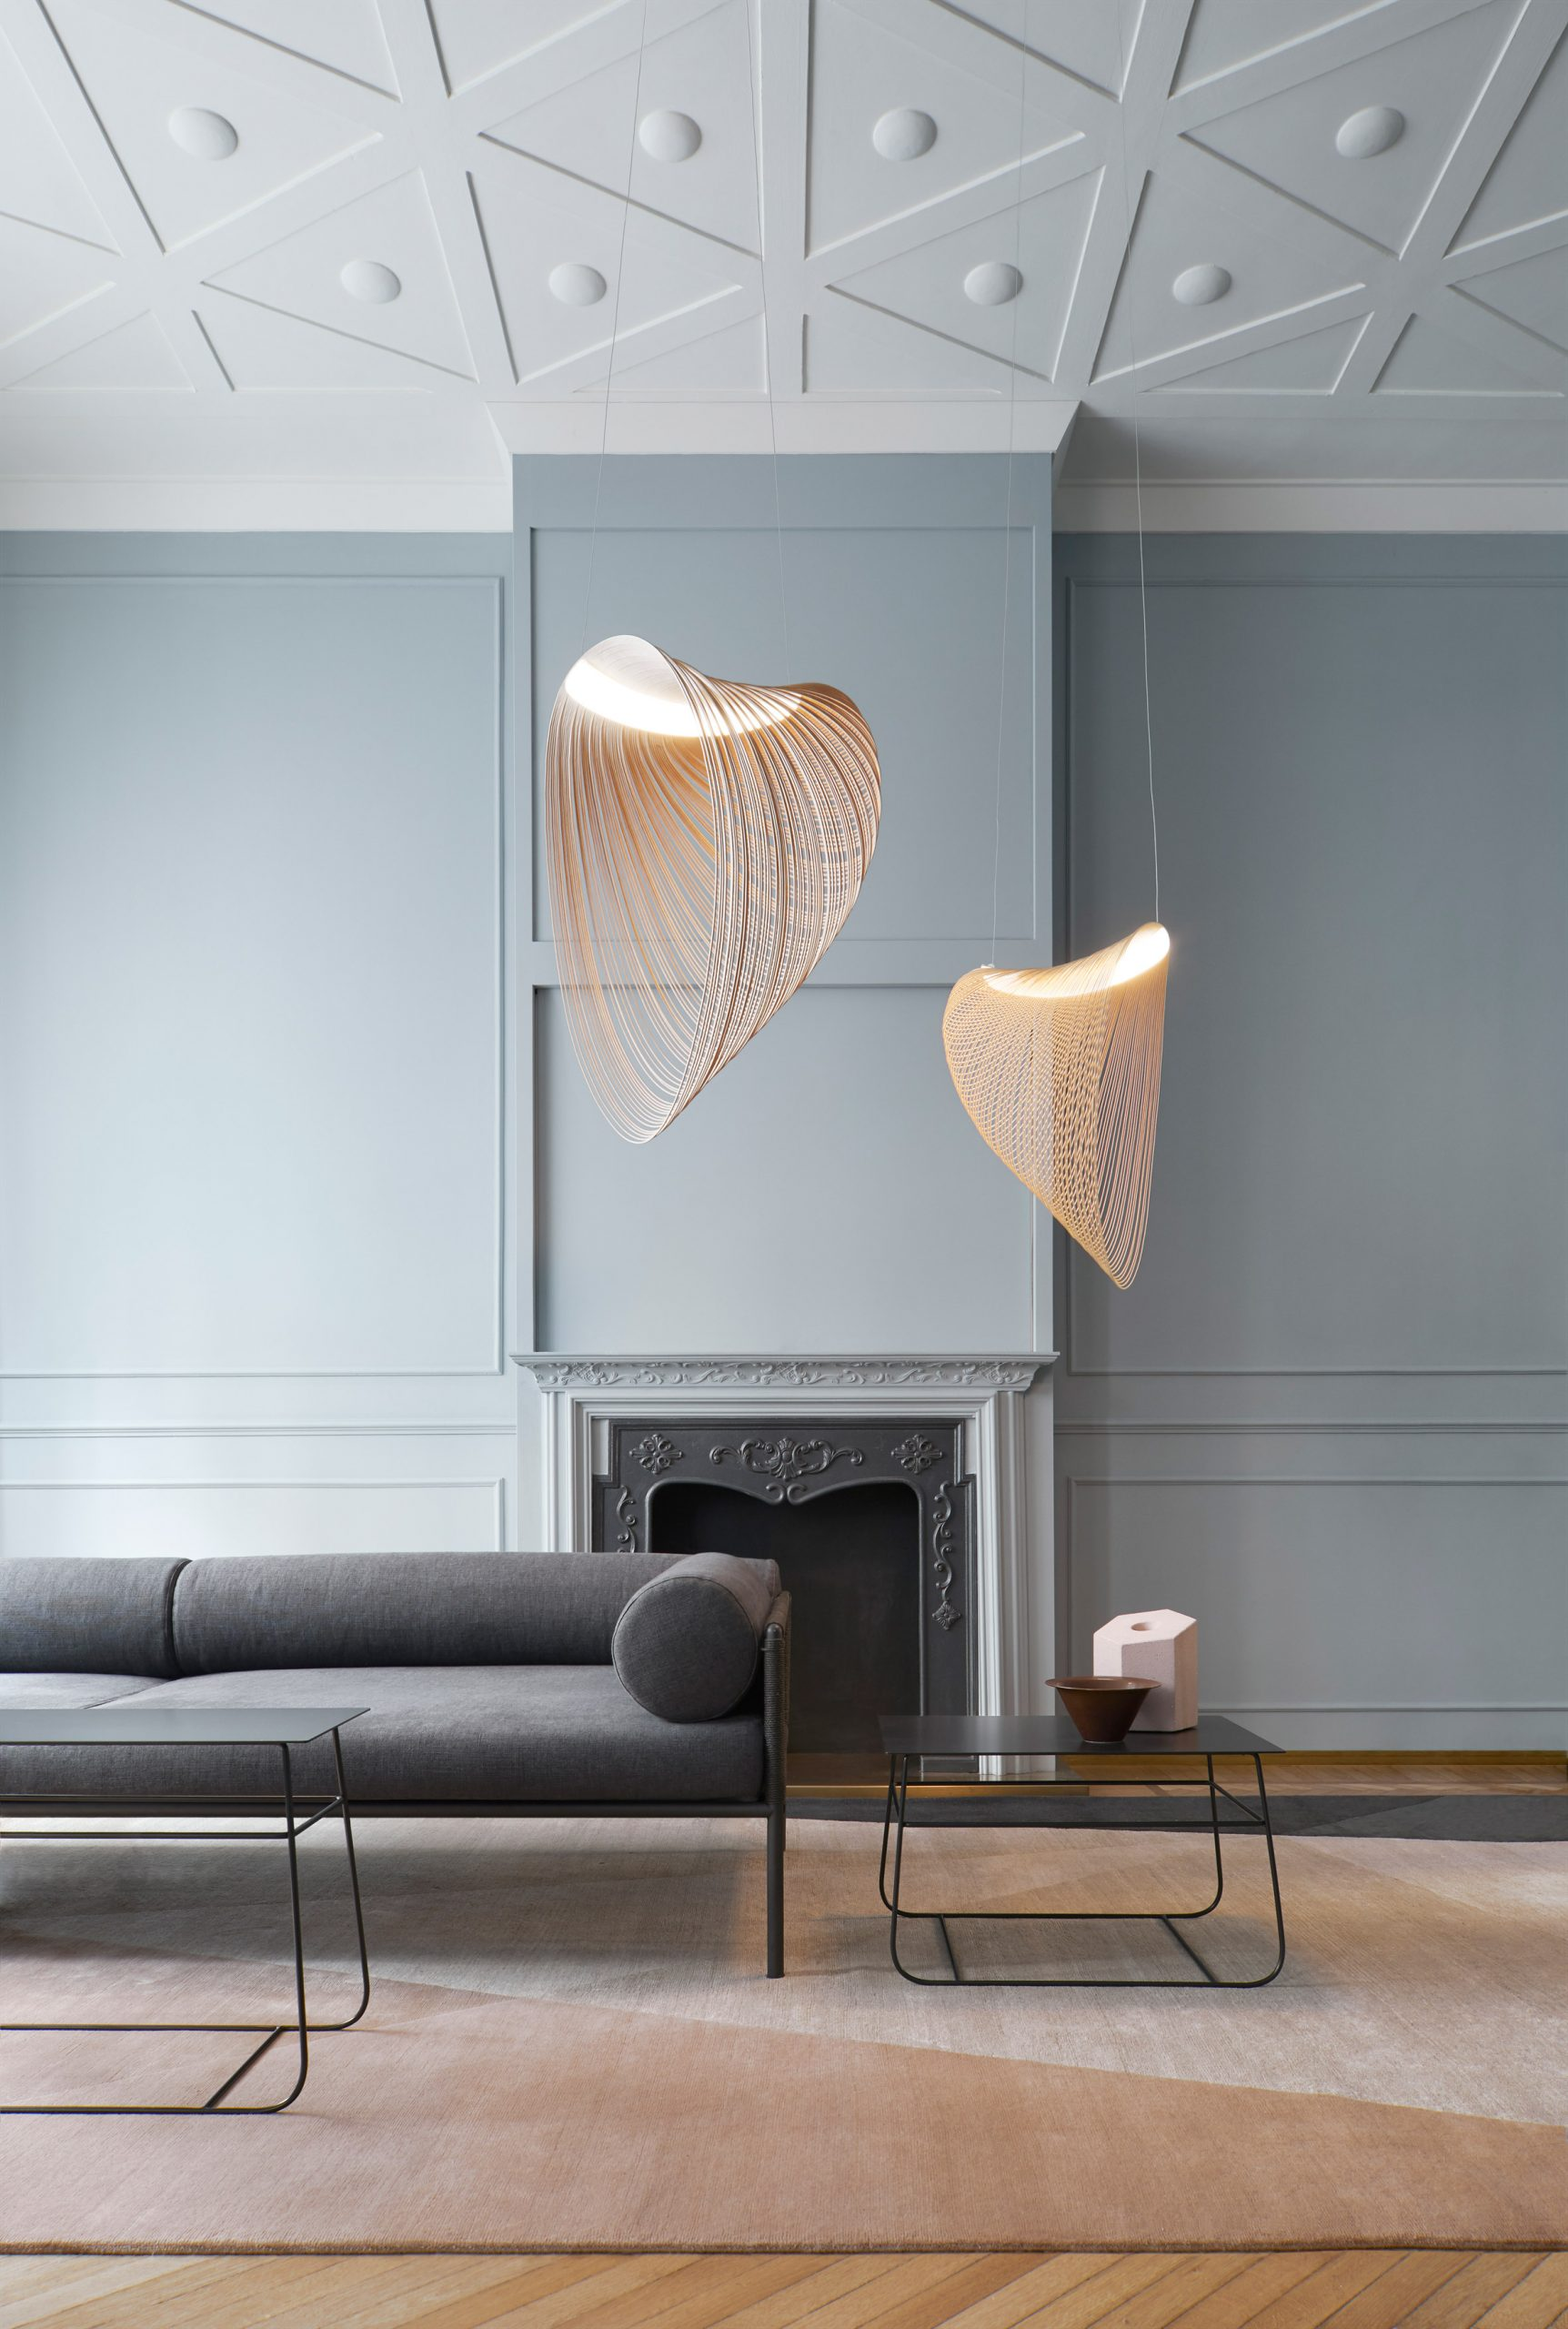 Two Illan Pendant Lights in an interior setting